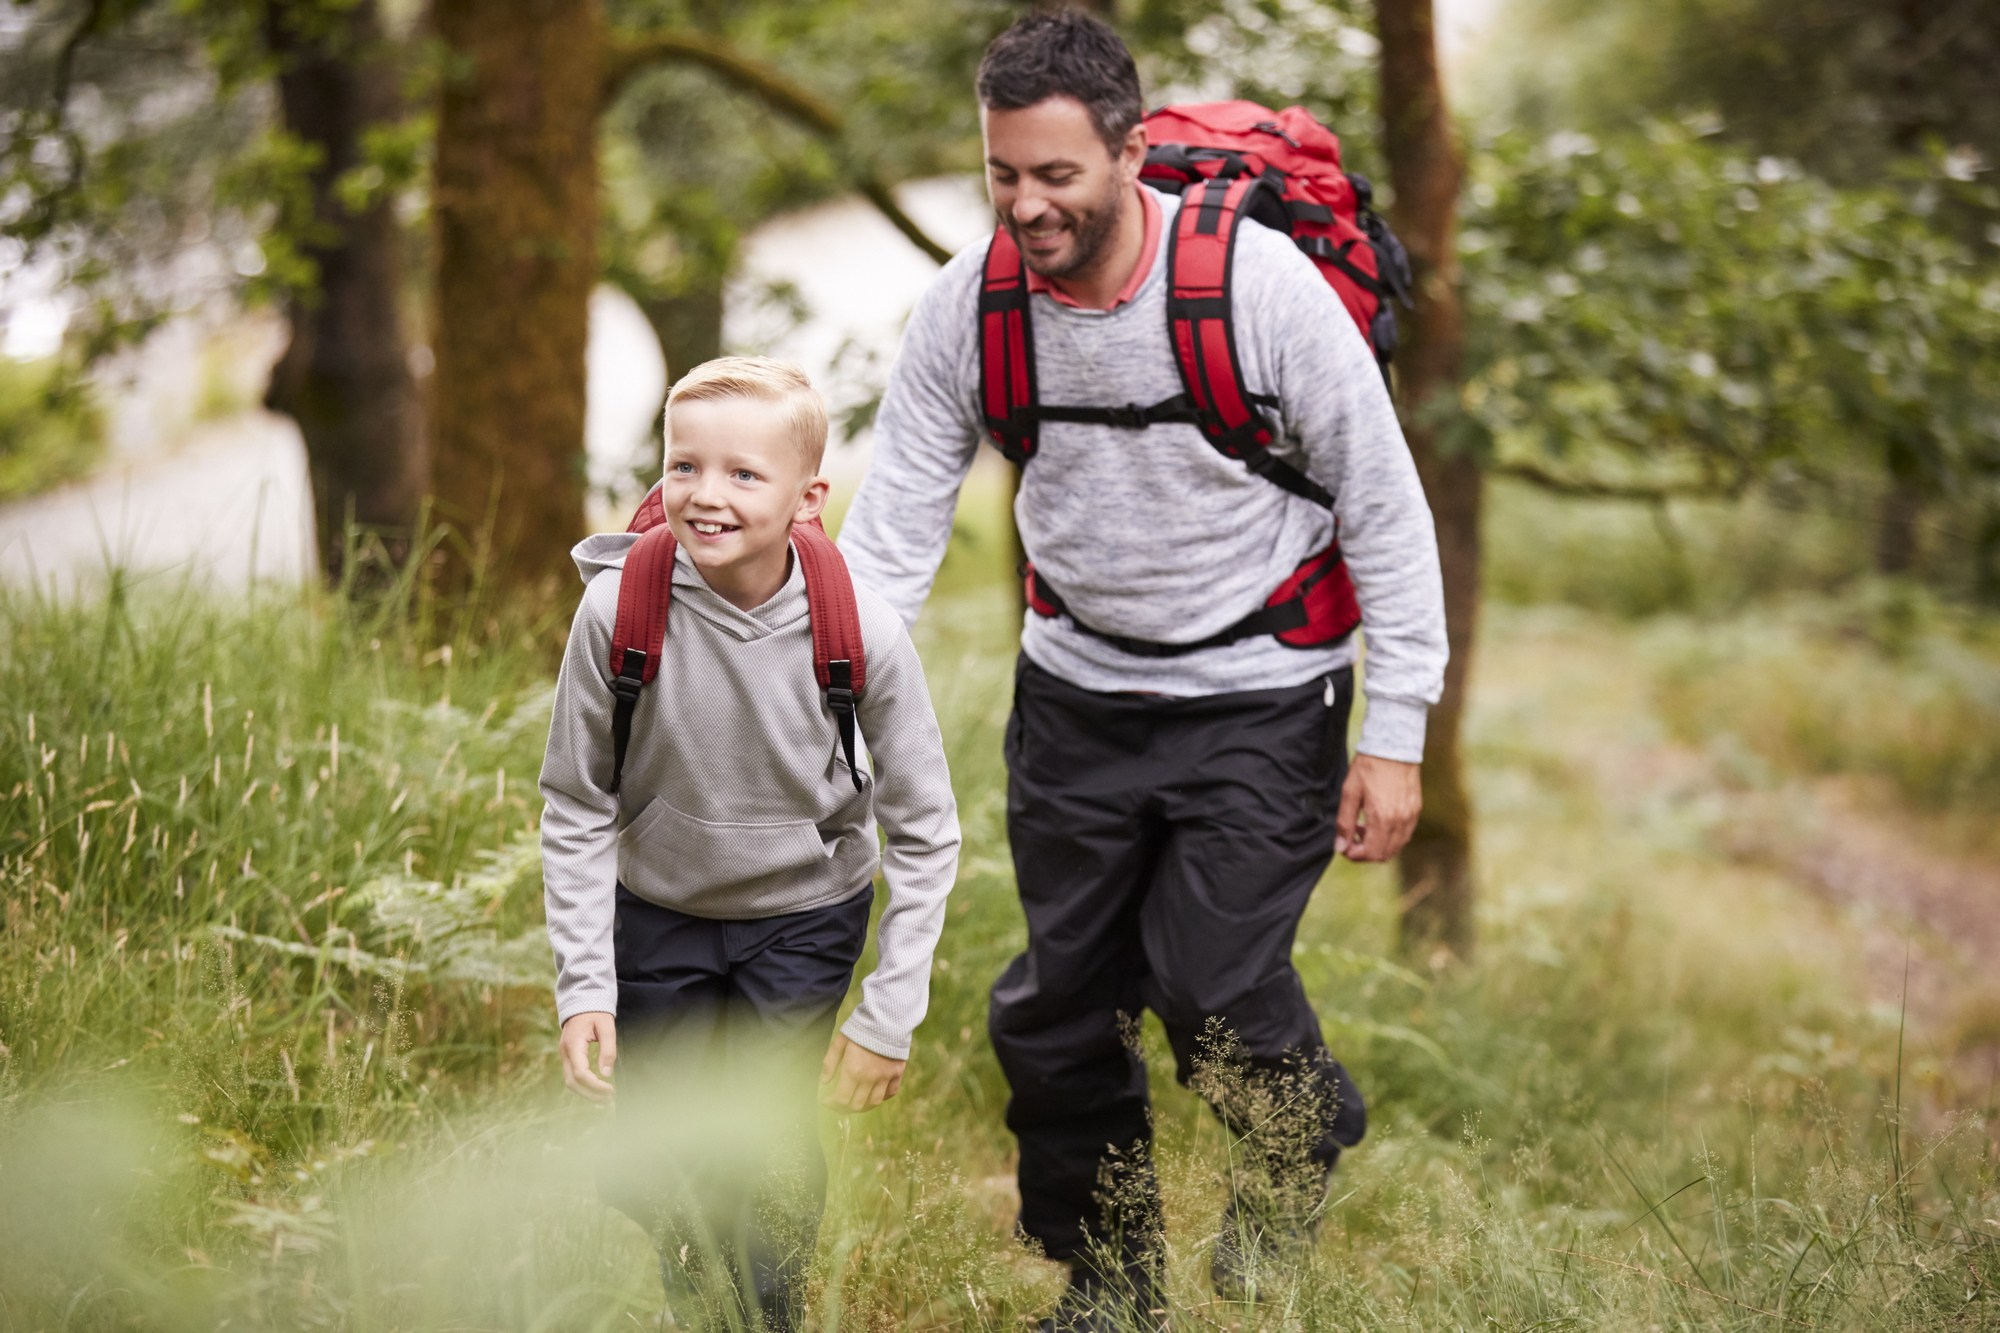 All family members should carry their own backpacks when camping